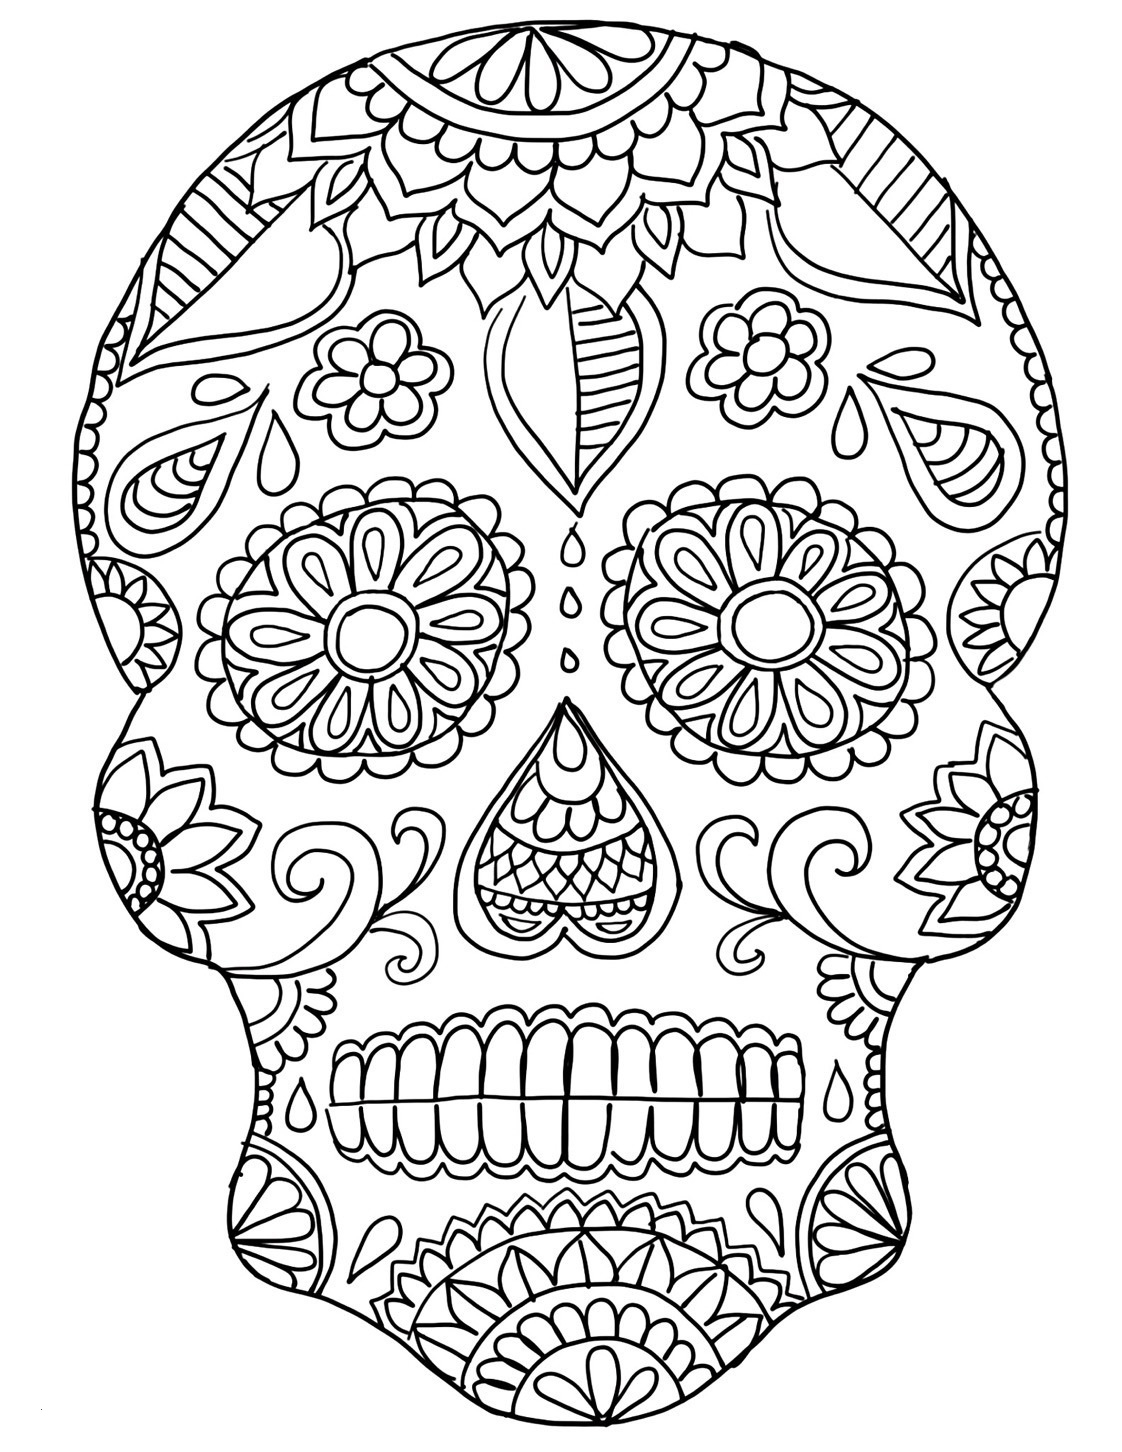 Free Printable Skull Coloring Pages  Printable 13o - Free Download